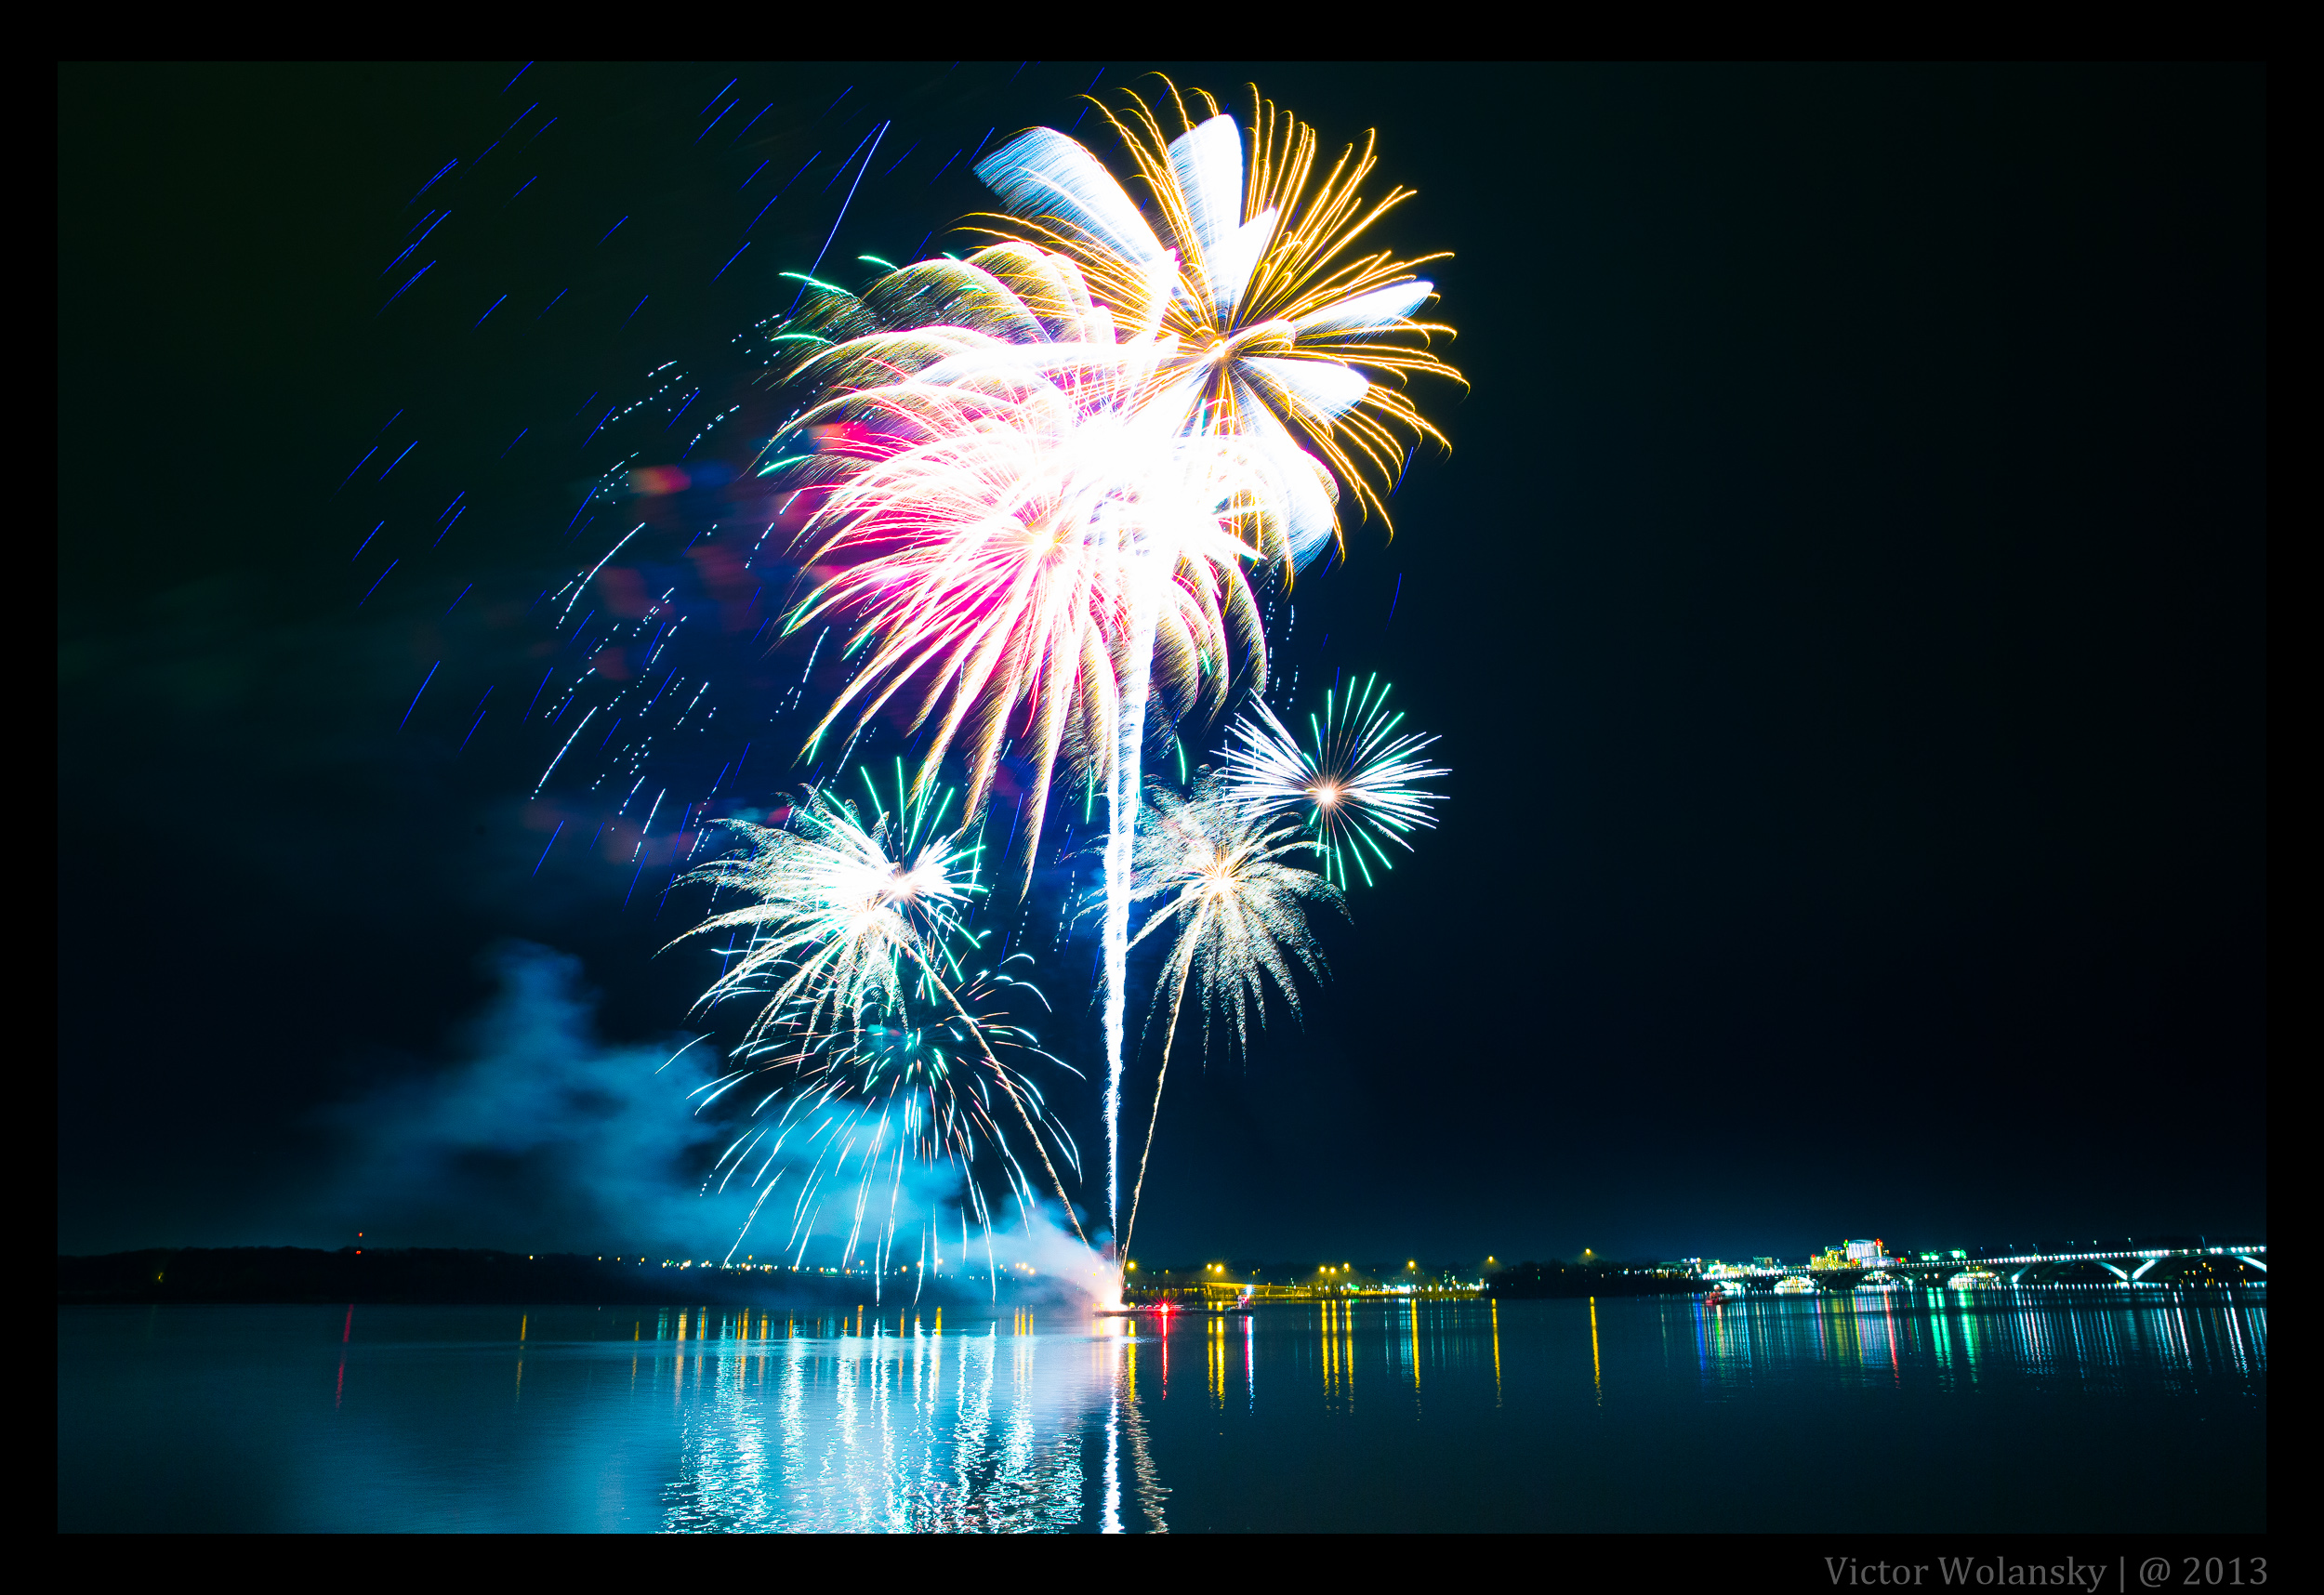 Fireworks over the Alexandria waterfront during First Night Alexandria 2012. (Photo: Victor Wolansky)